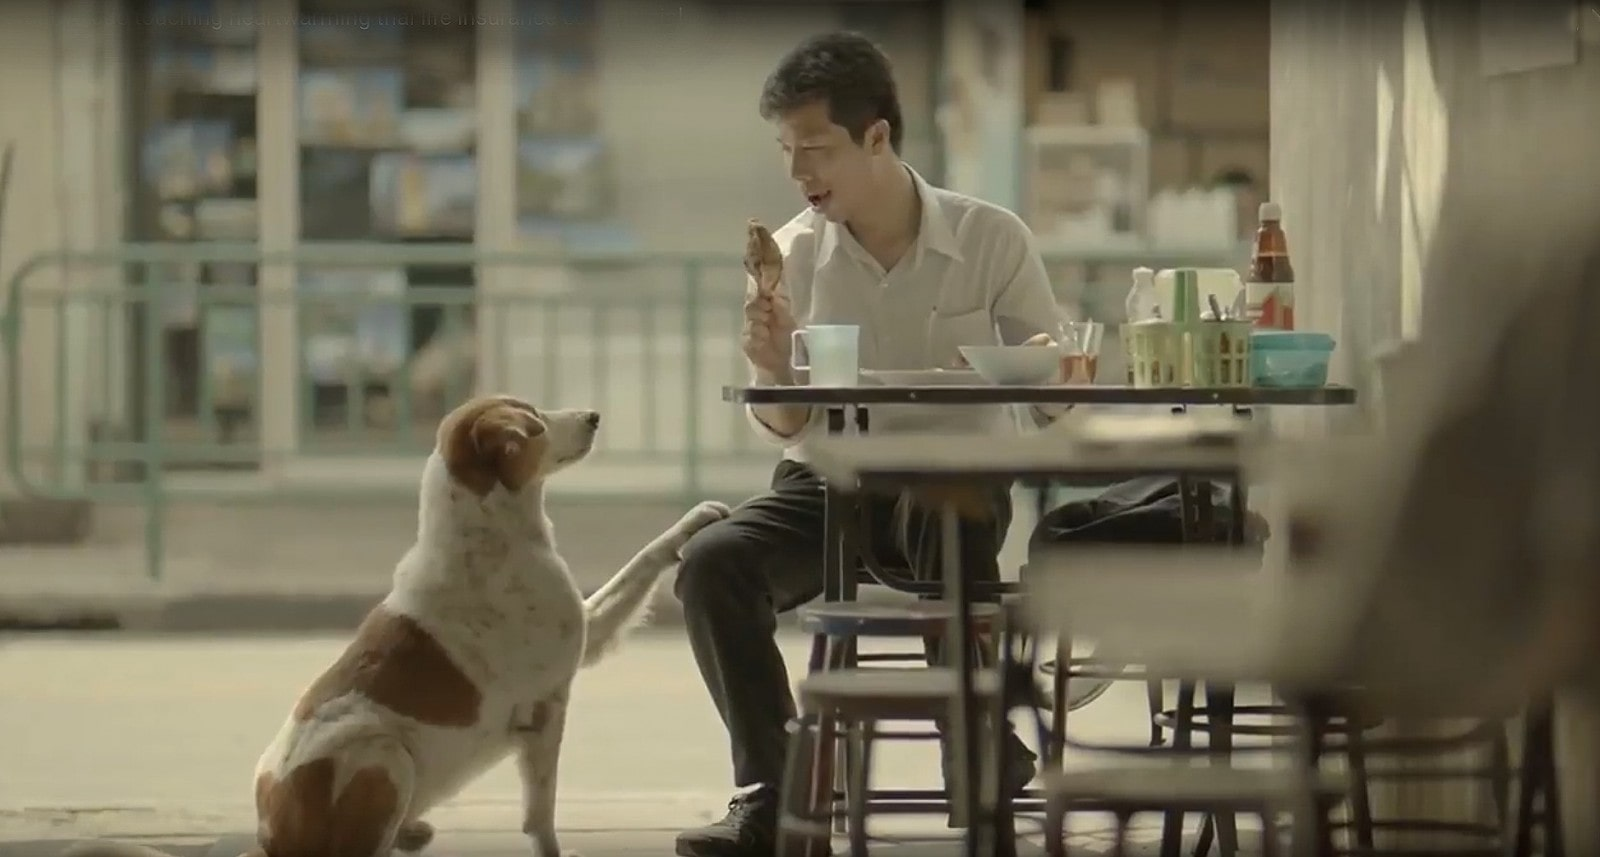 Sadvertising: The art of making us cry and selling stuff | The Thaiger